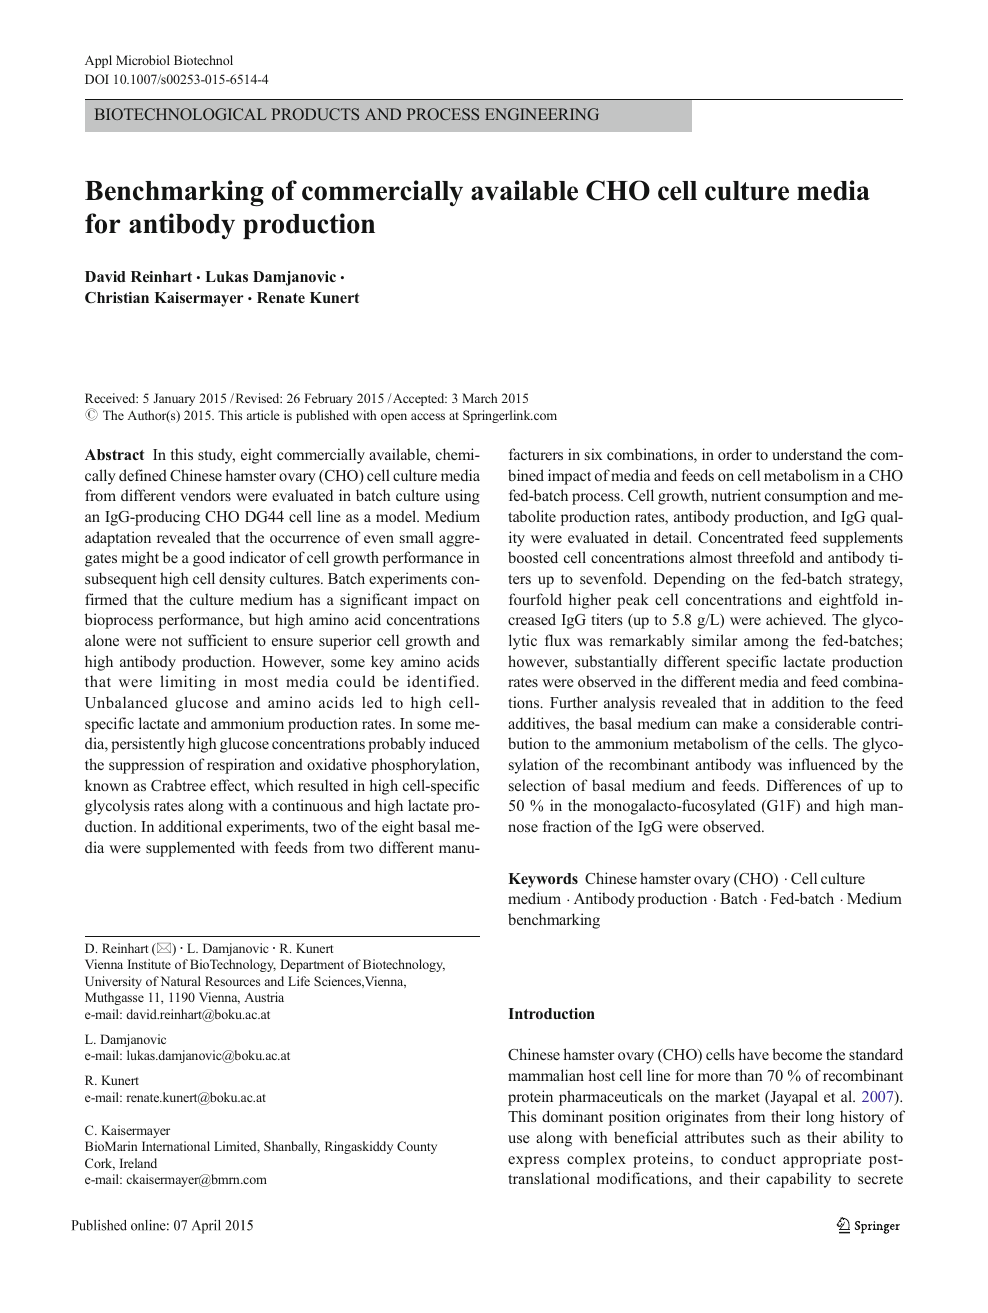 Benchmarking of commercially available CHO cell culture